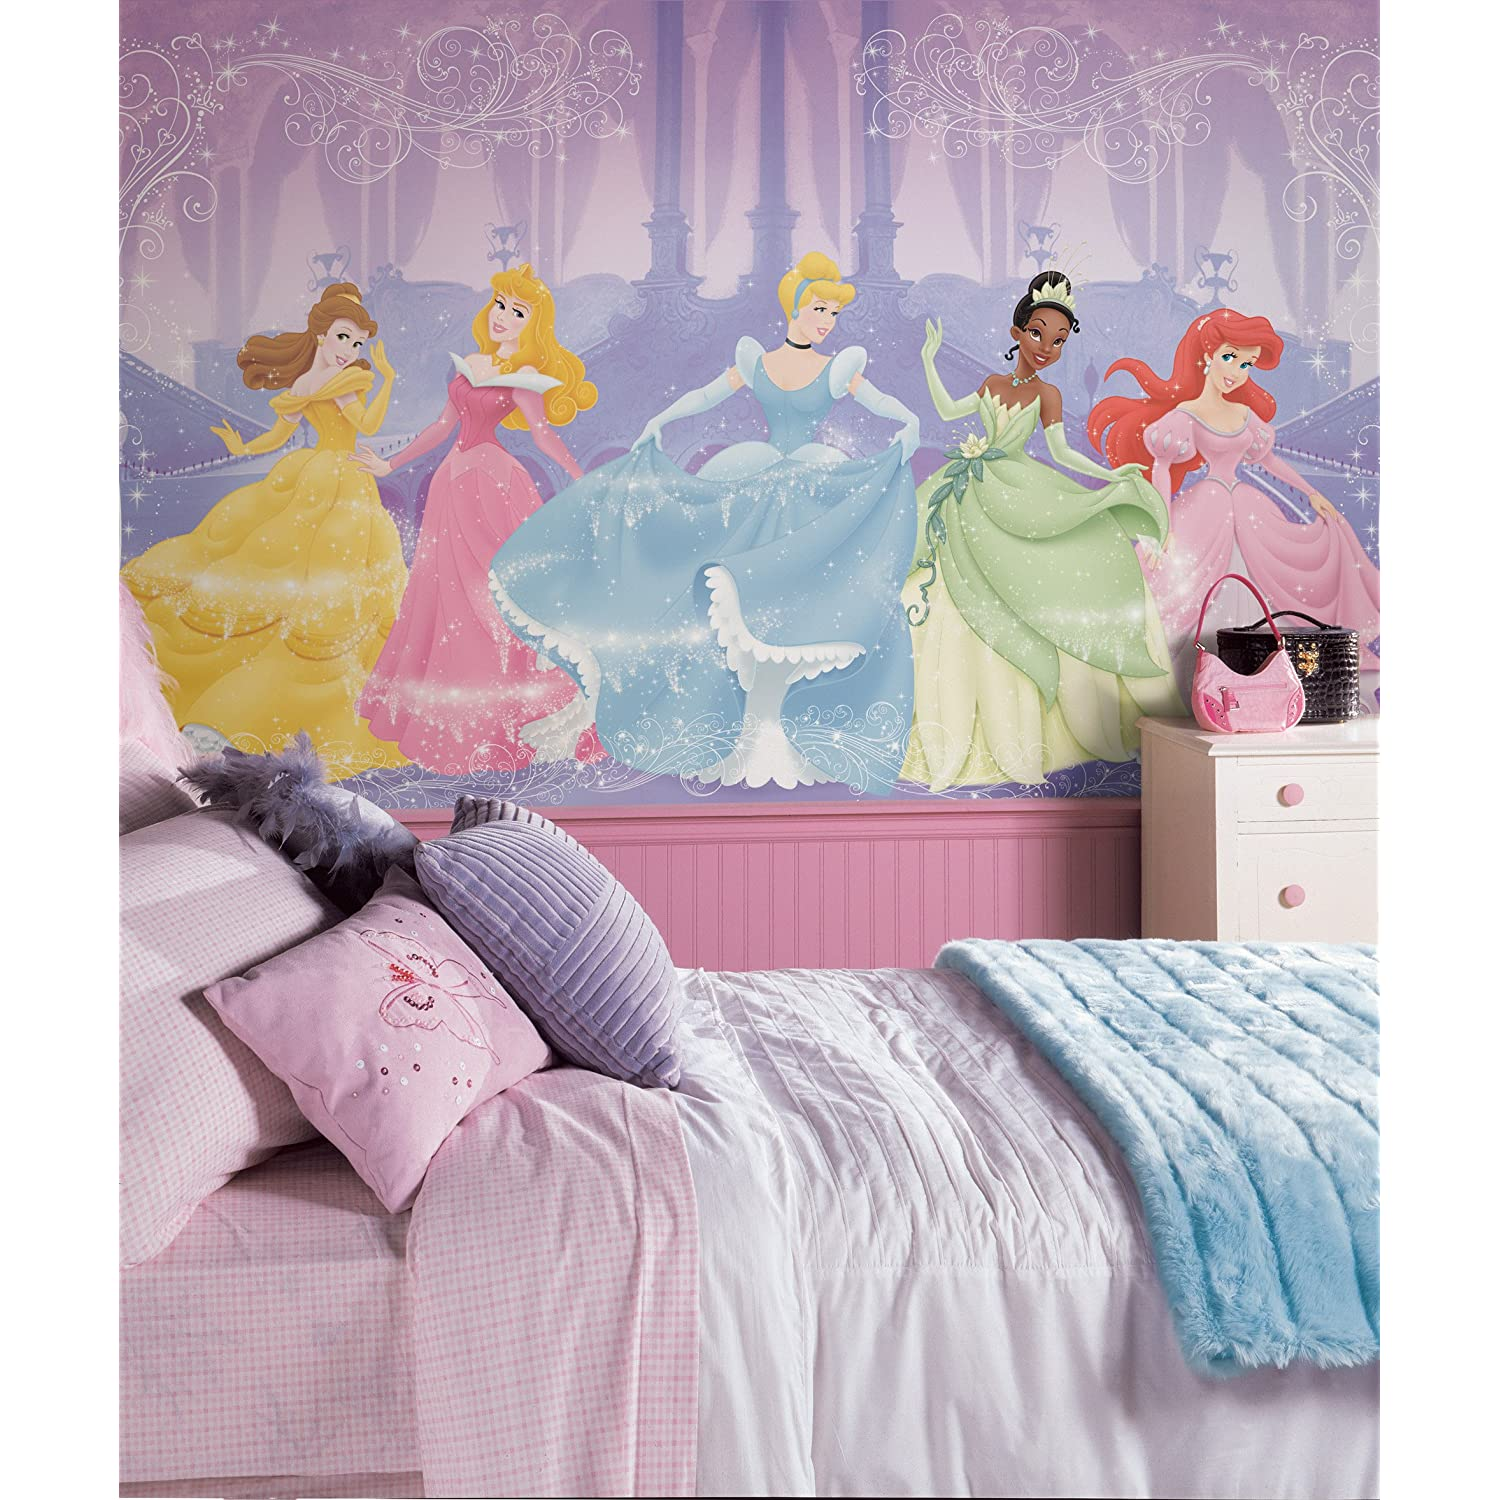 Princess Room : Disney Perfect Princess 6-Foot-by-10.5-Foot Prepasted Wall Mural BUY ...